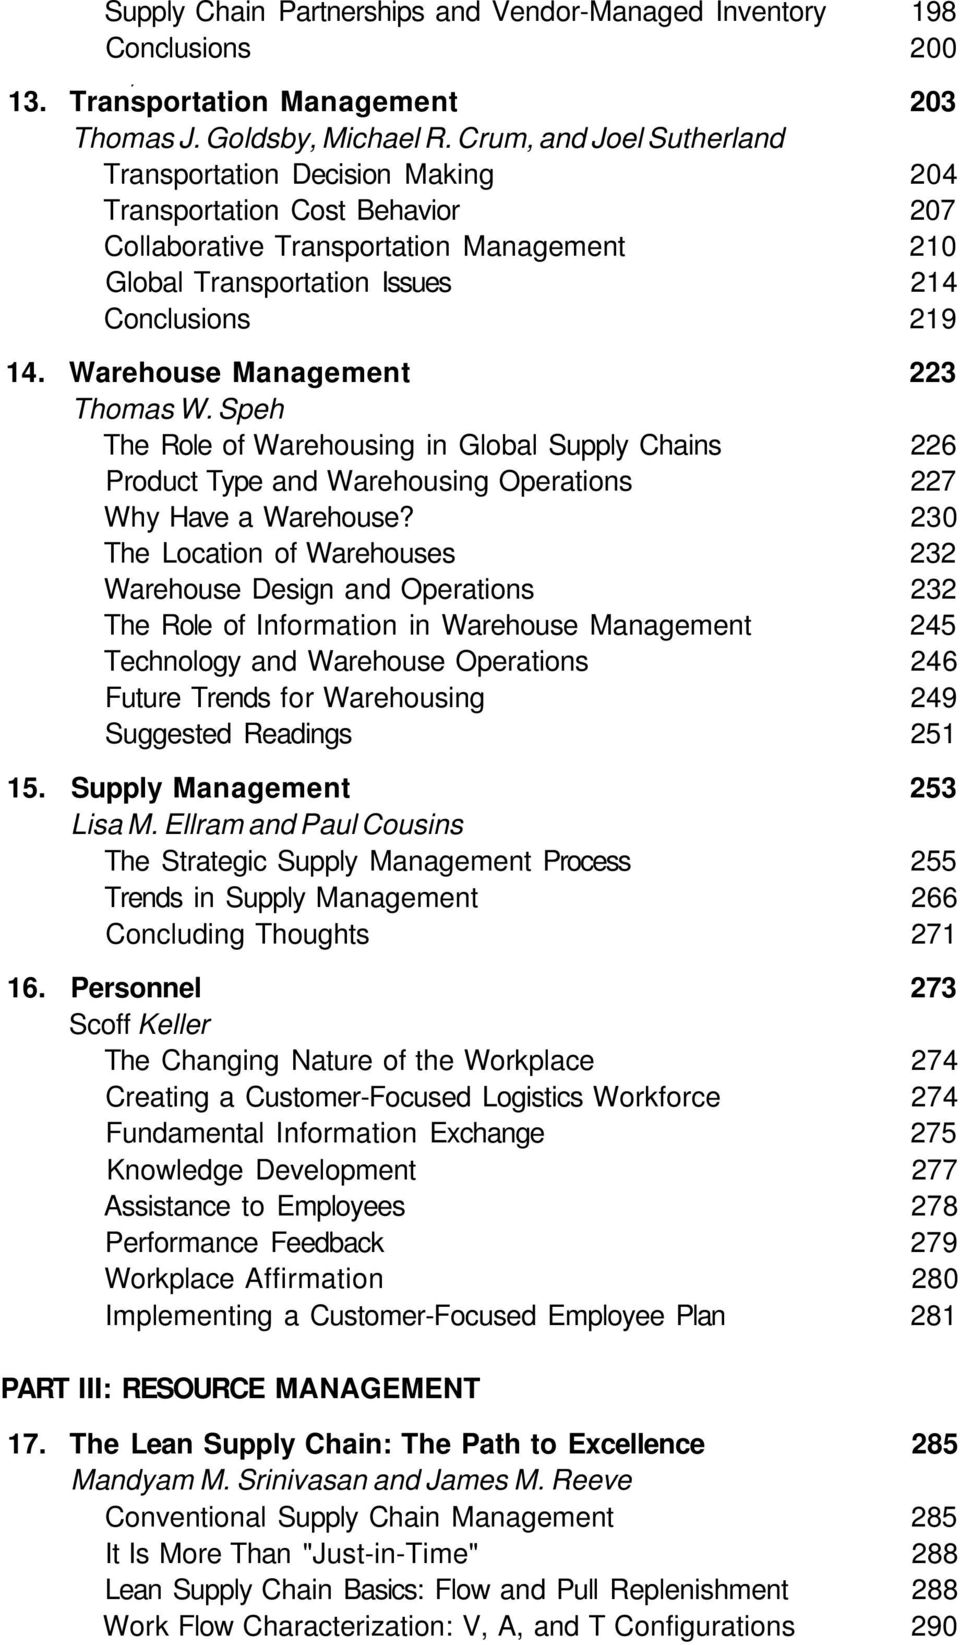 Warehouse Management 223 Thomas W. Speh The Role of Warehousing in Global Supply Chains 226 Product Type and Warehousing Operations 227 Why Have a Warehouse?